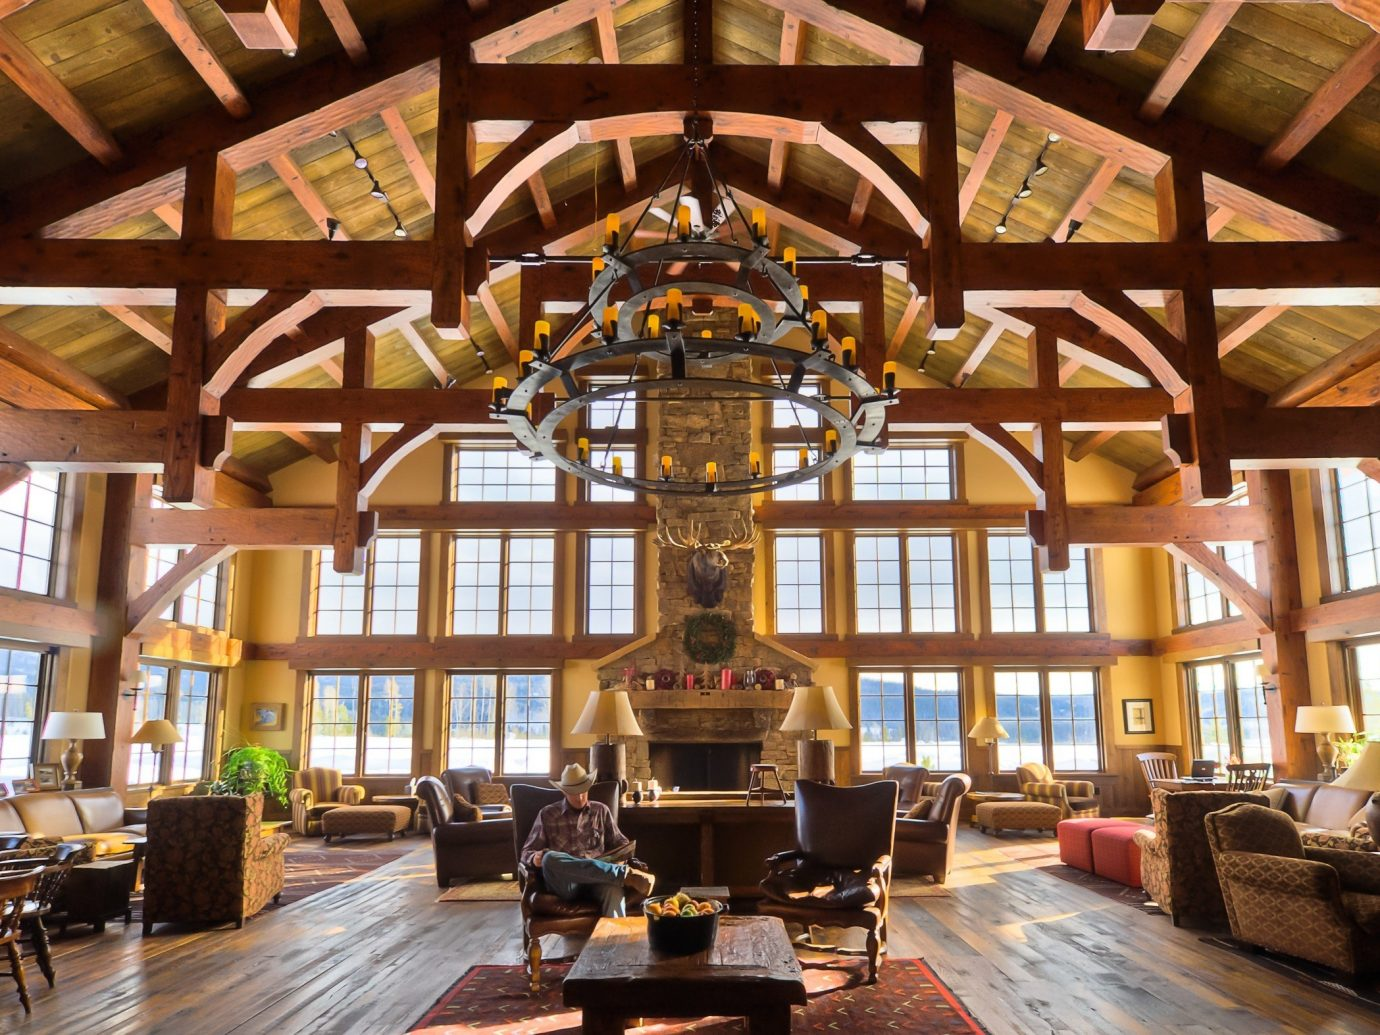 All-Inclusive Resorts Family Travel Hotels table indoor Living room chair building ceiling estate interior design chapel furniture Resort place of worship tourist attraction area several